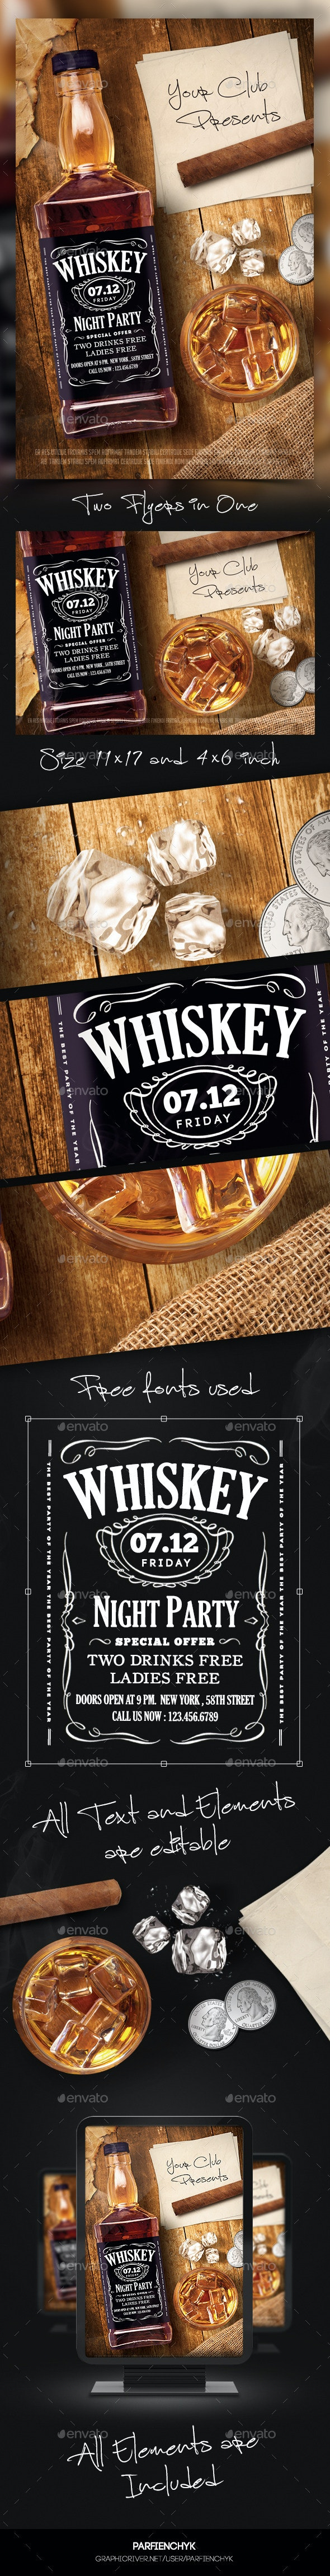 Whiskey Night Party Flyer Template - Clubs & Parties Events